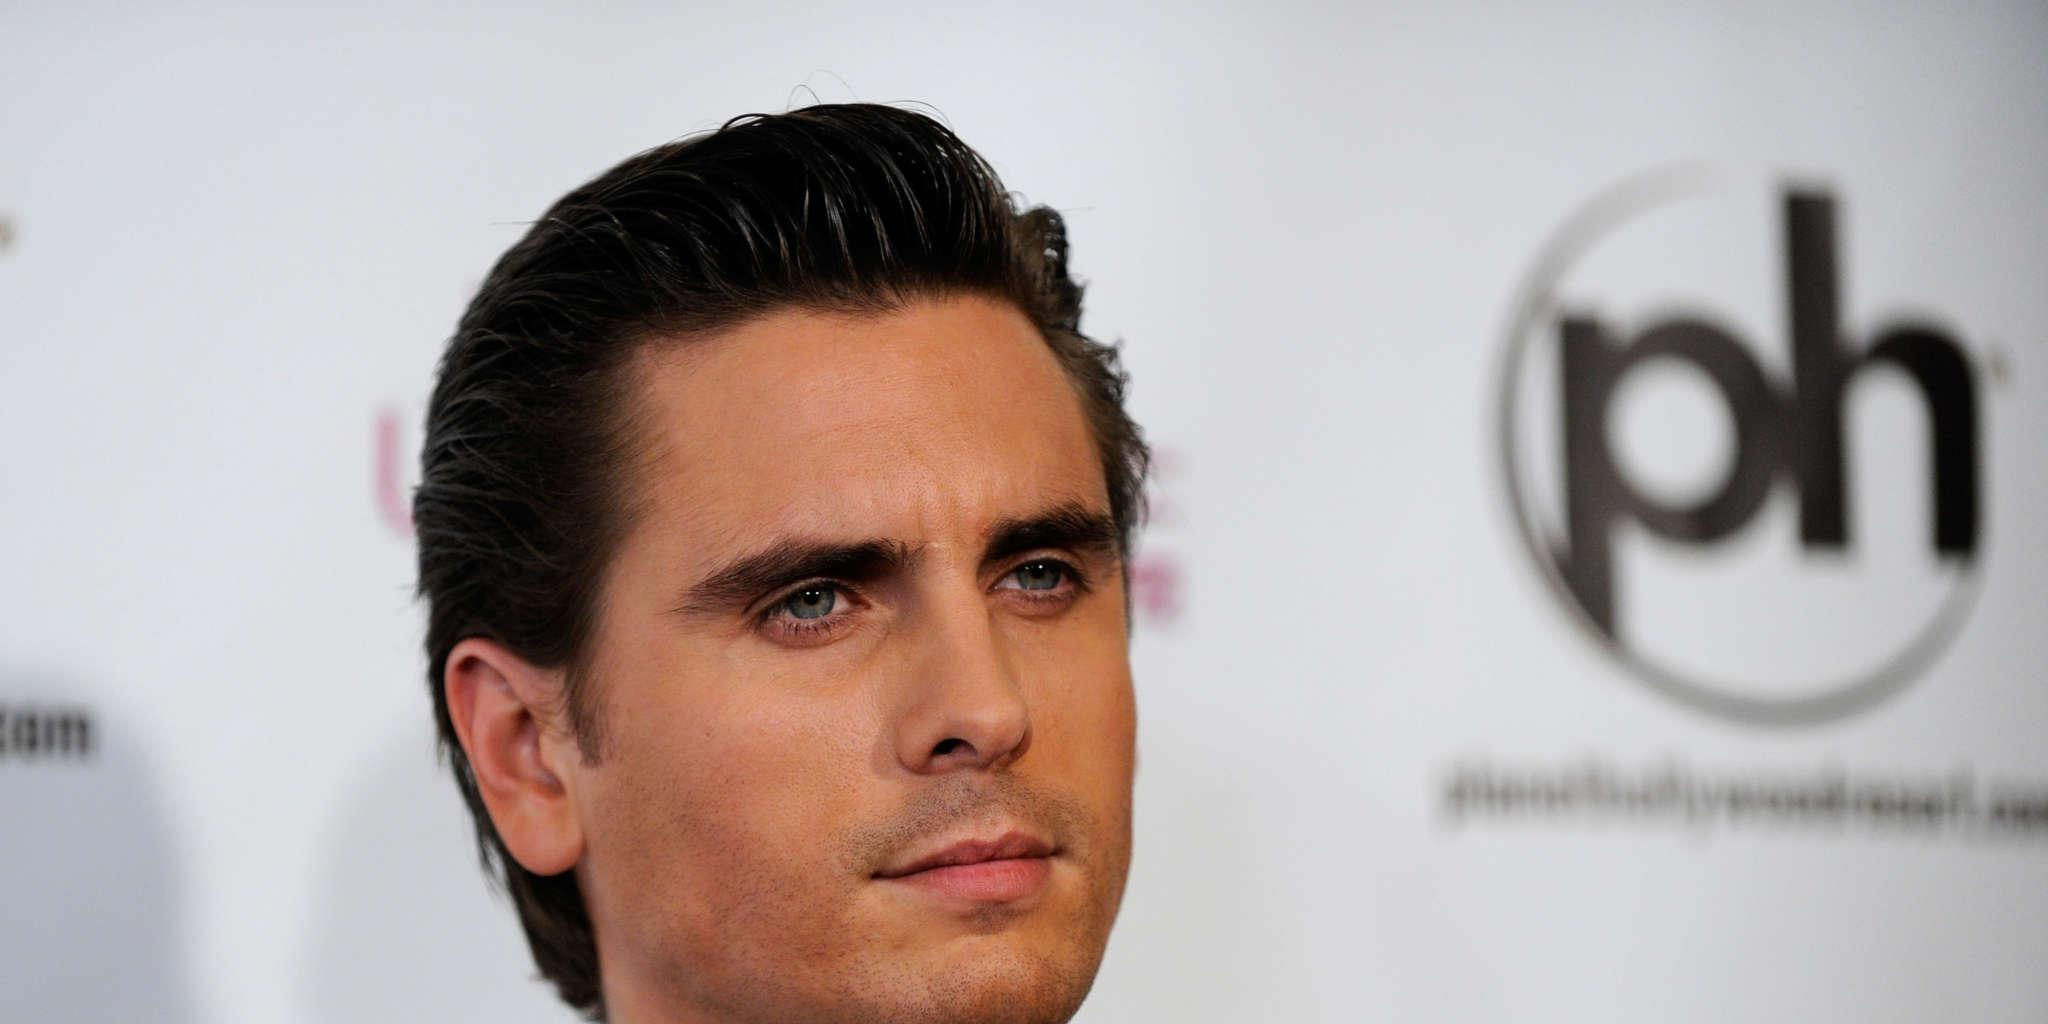 The President Of Scott Disick's Rehab Facility Speaks Out After Scott's Photo Leaks With Story